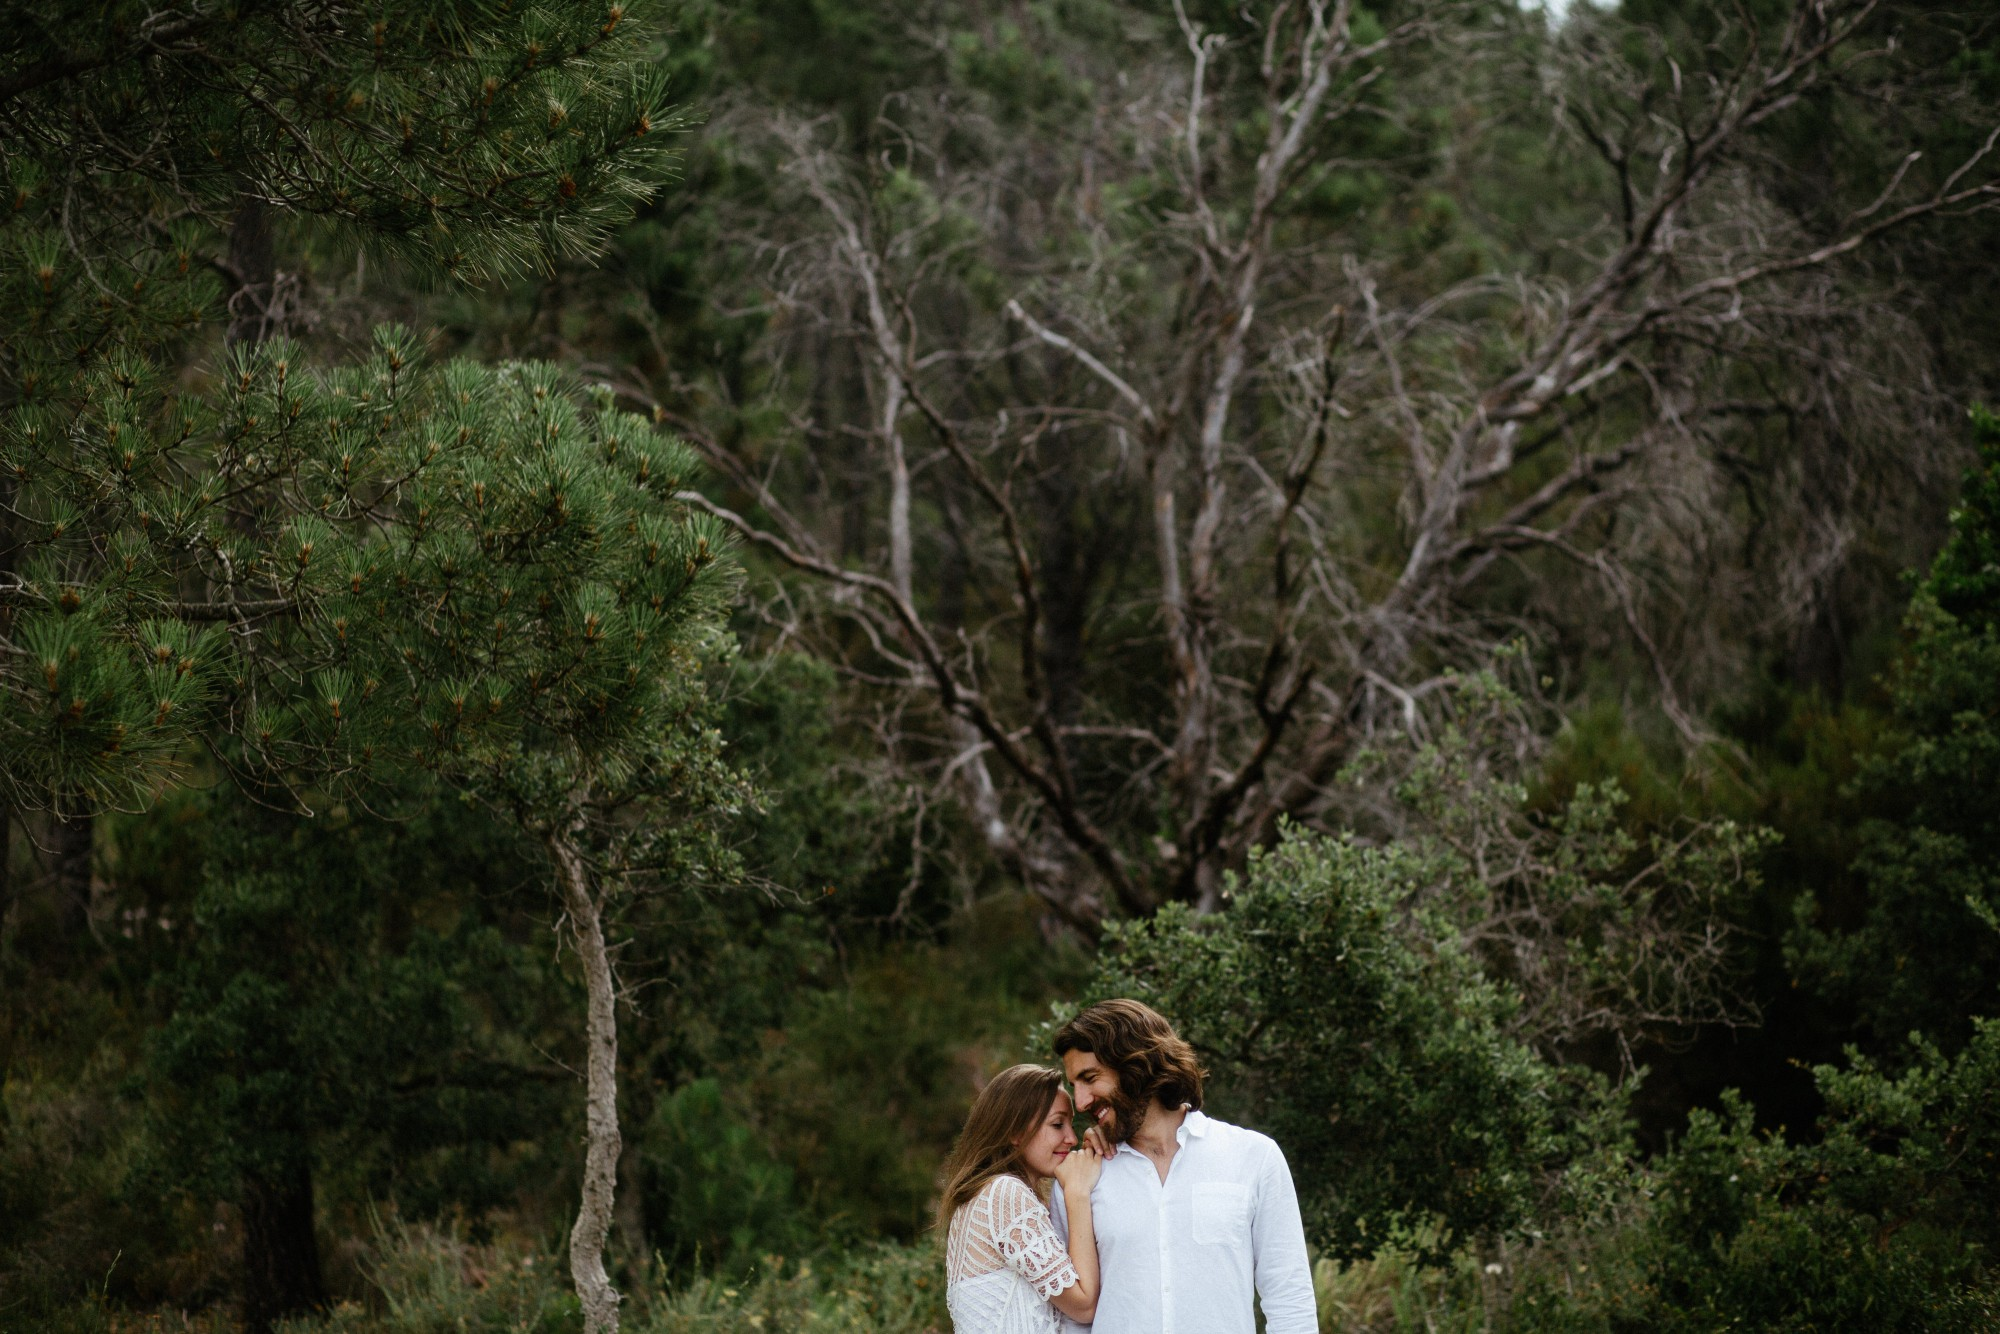 couple-nature-trees-elopement